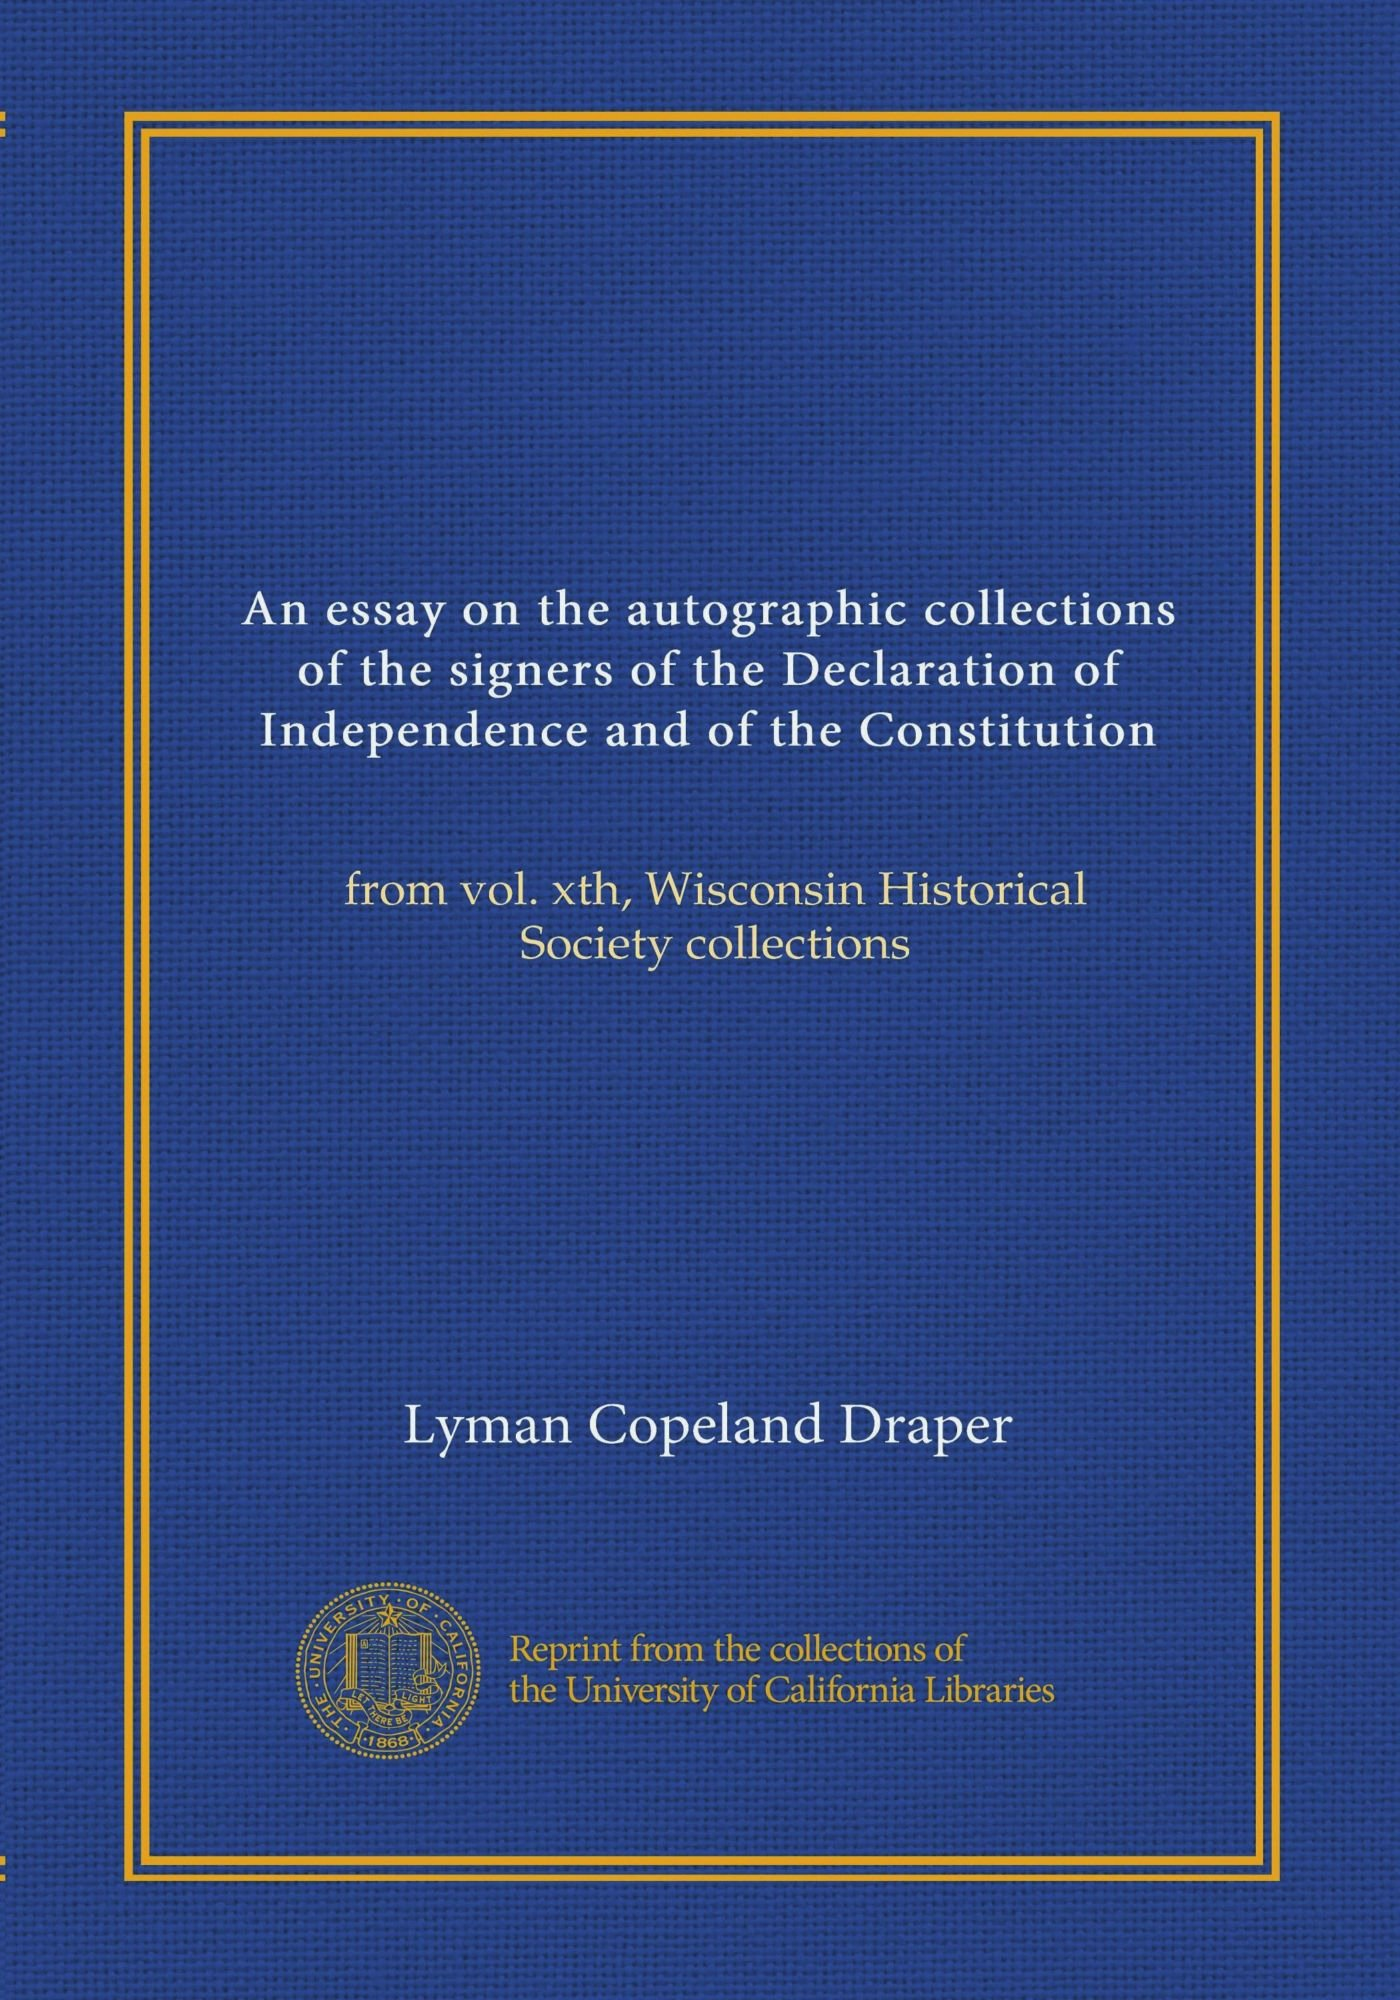 An essay on the autographic collections of the signers of the Declaration of Independence and of the Constitution: from vol. xth, Wisconsin Historical Society collections